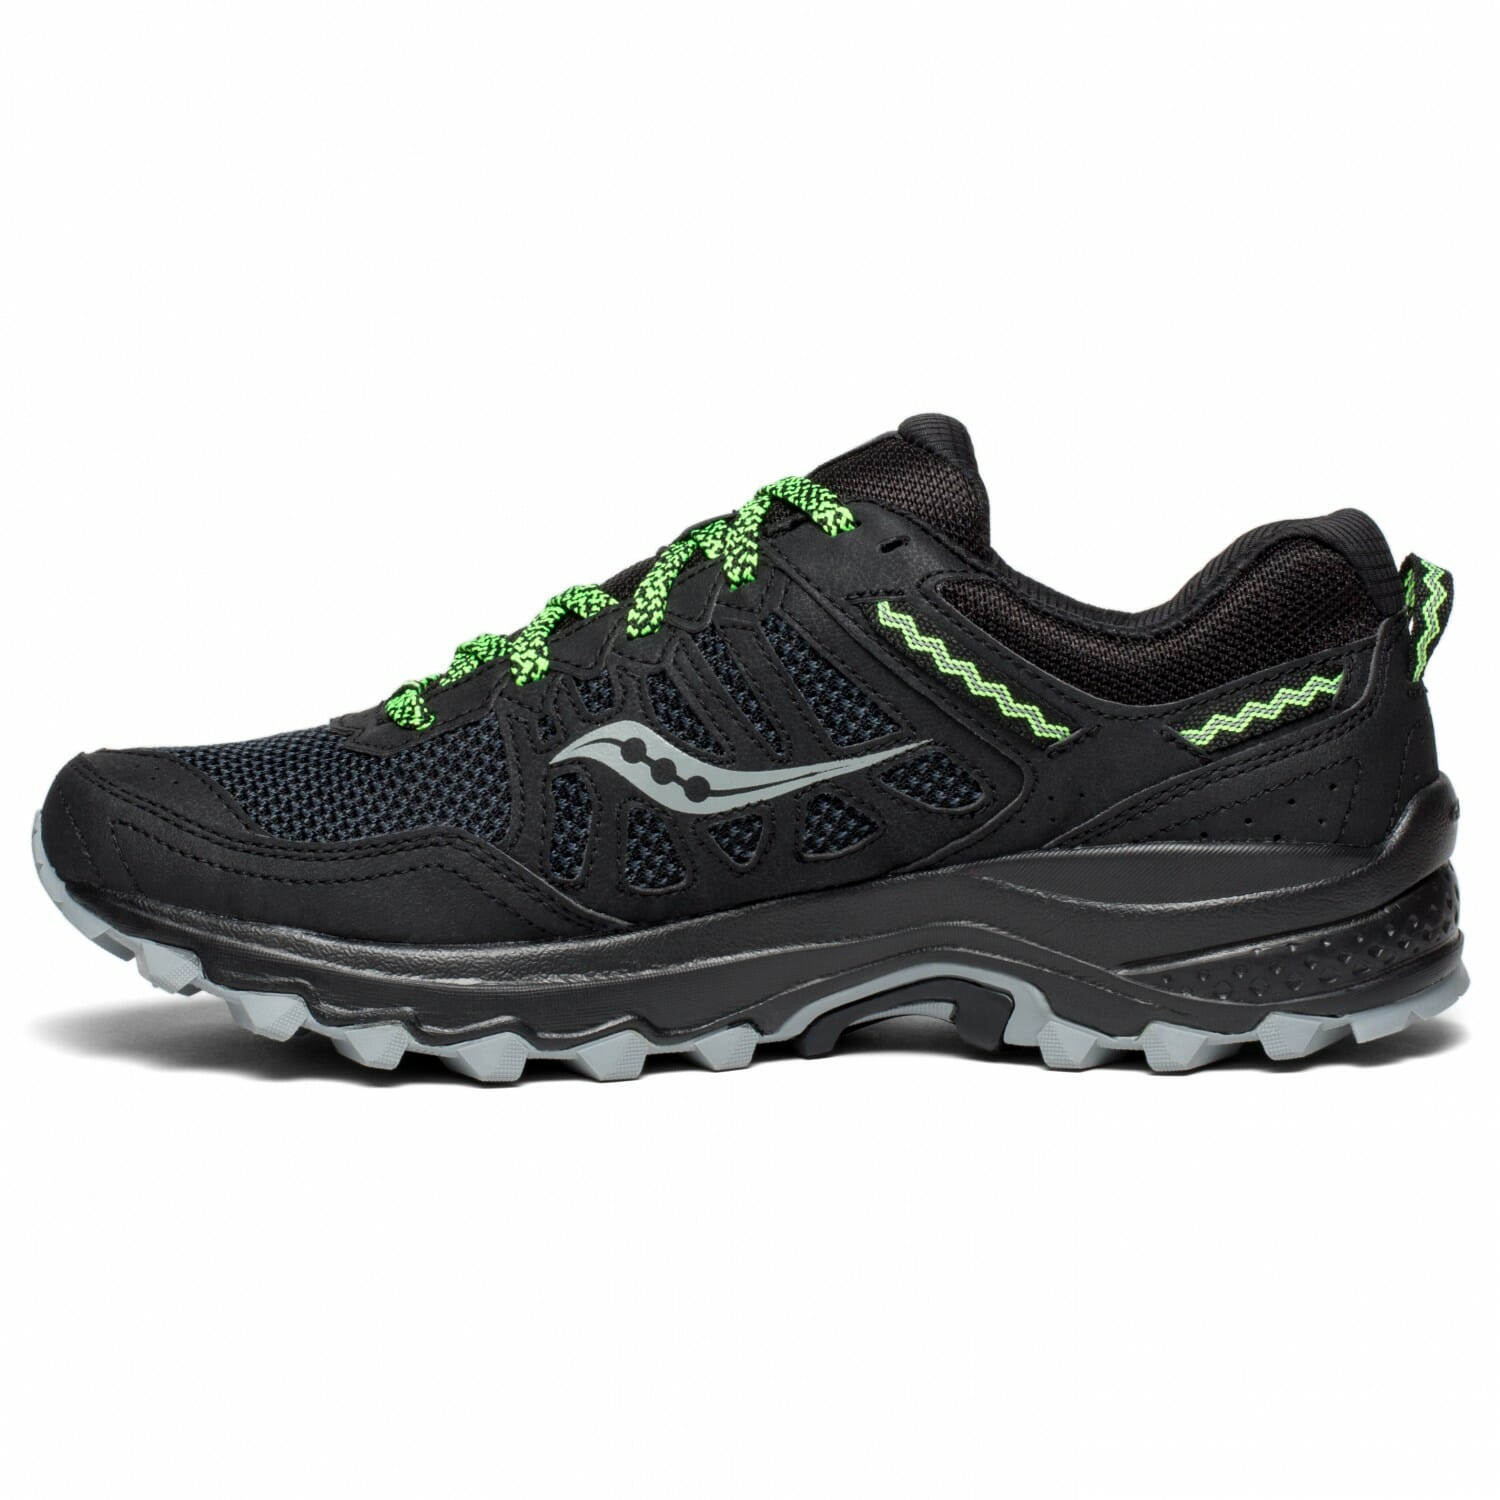 2f5b096cb2b7 Saucony Excursion TR12 GTX Overview